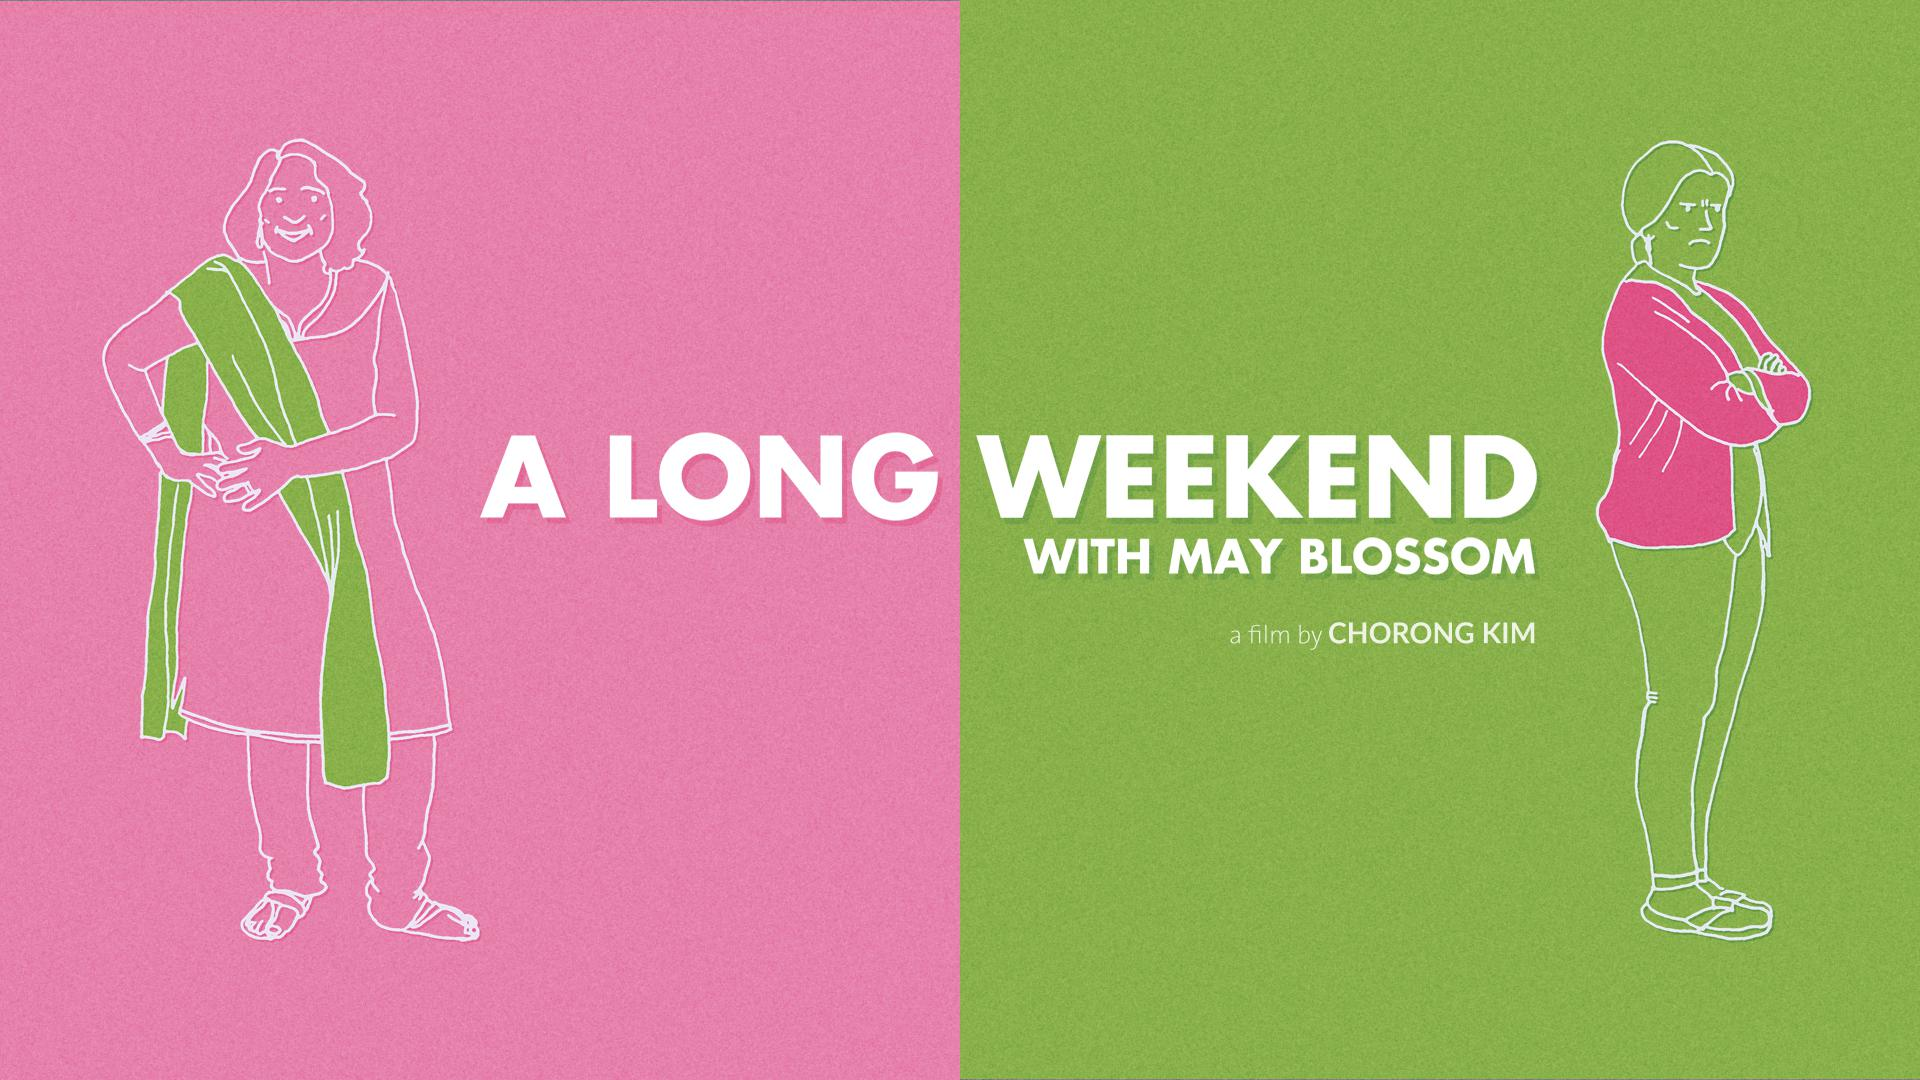 A Long Weekend with May Blossom